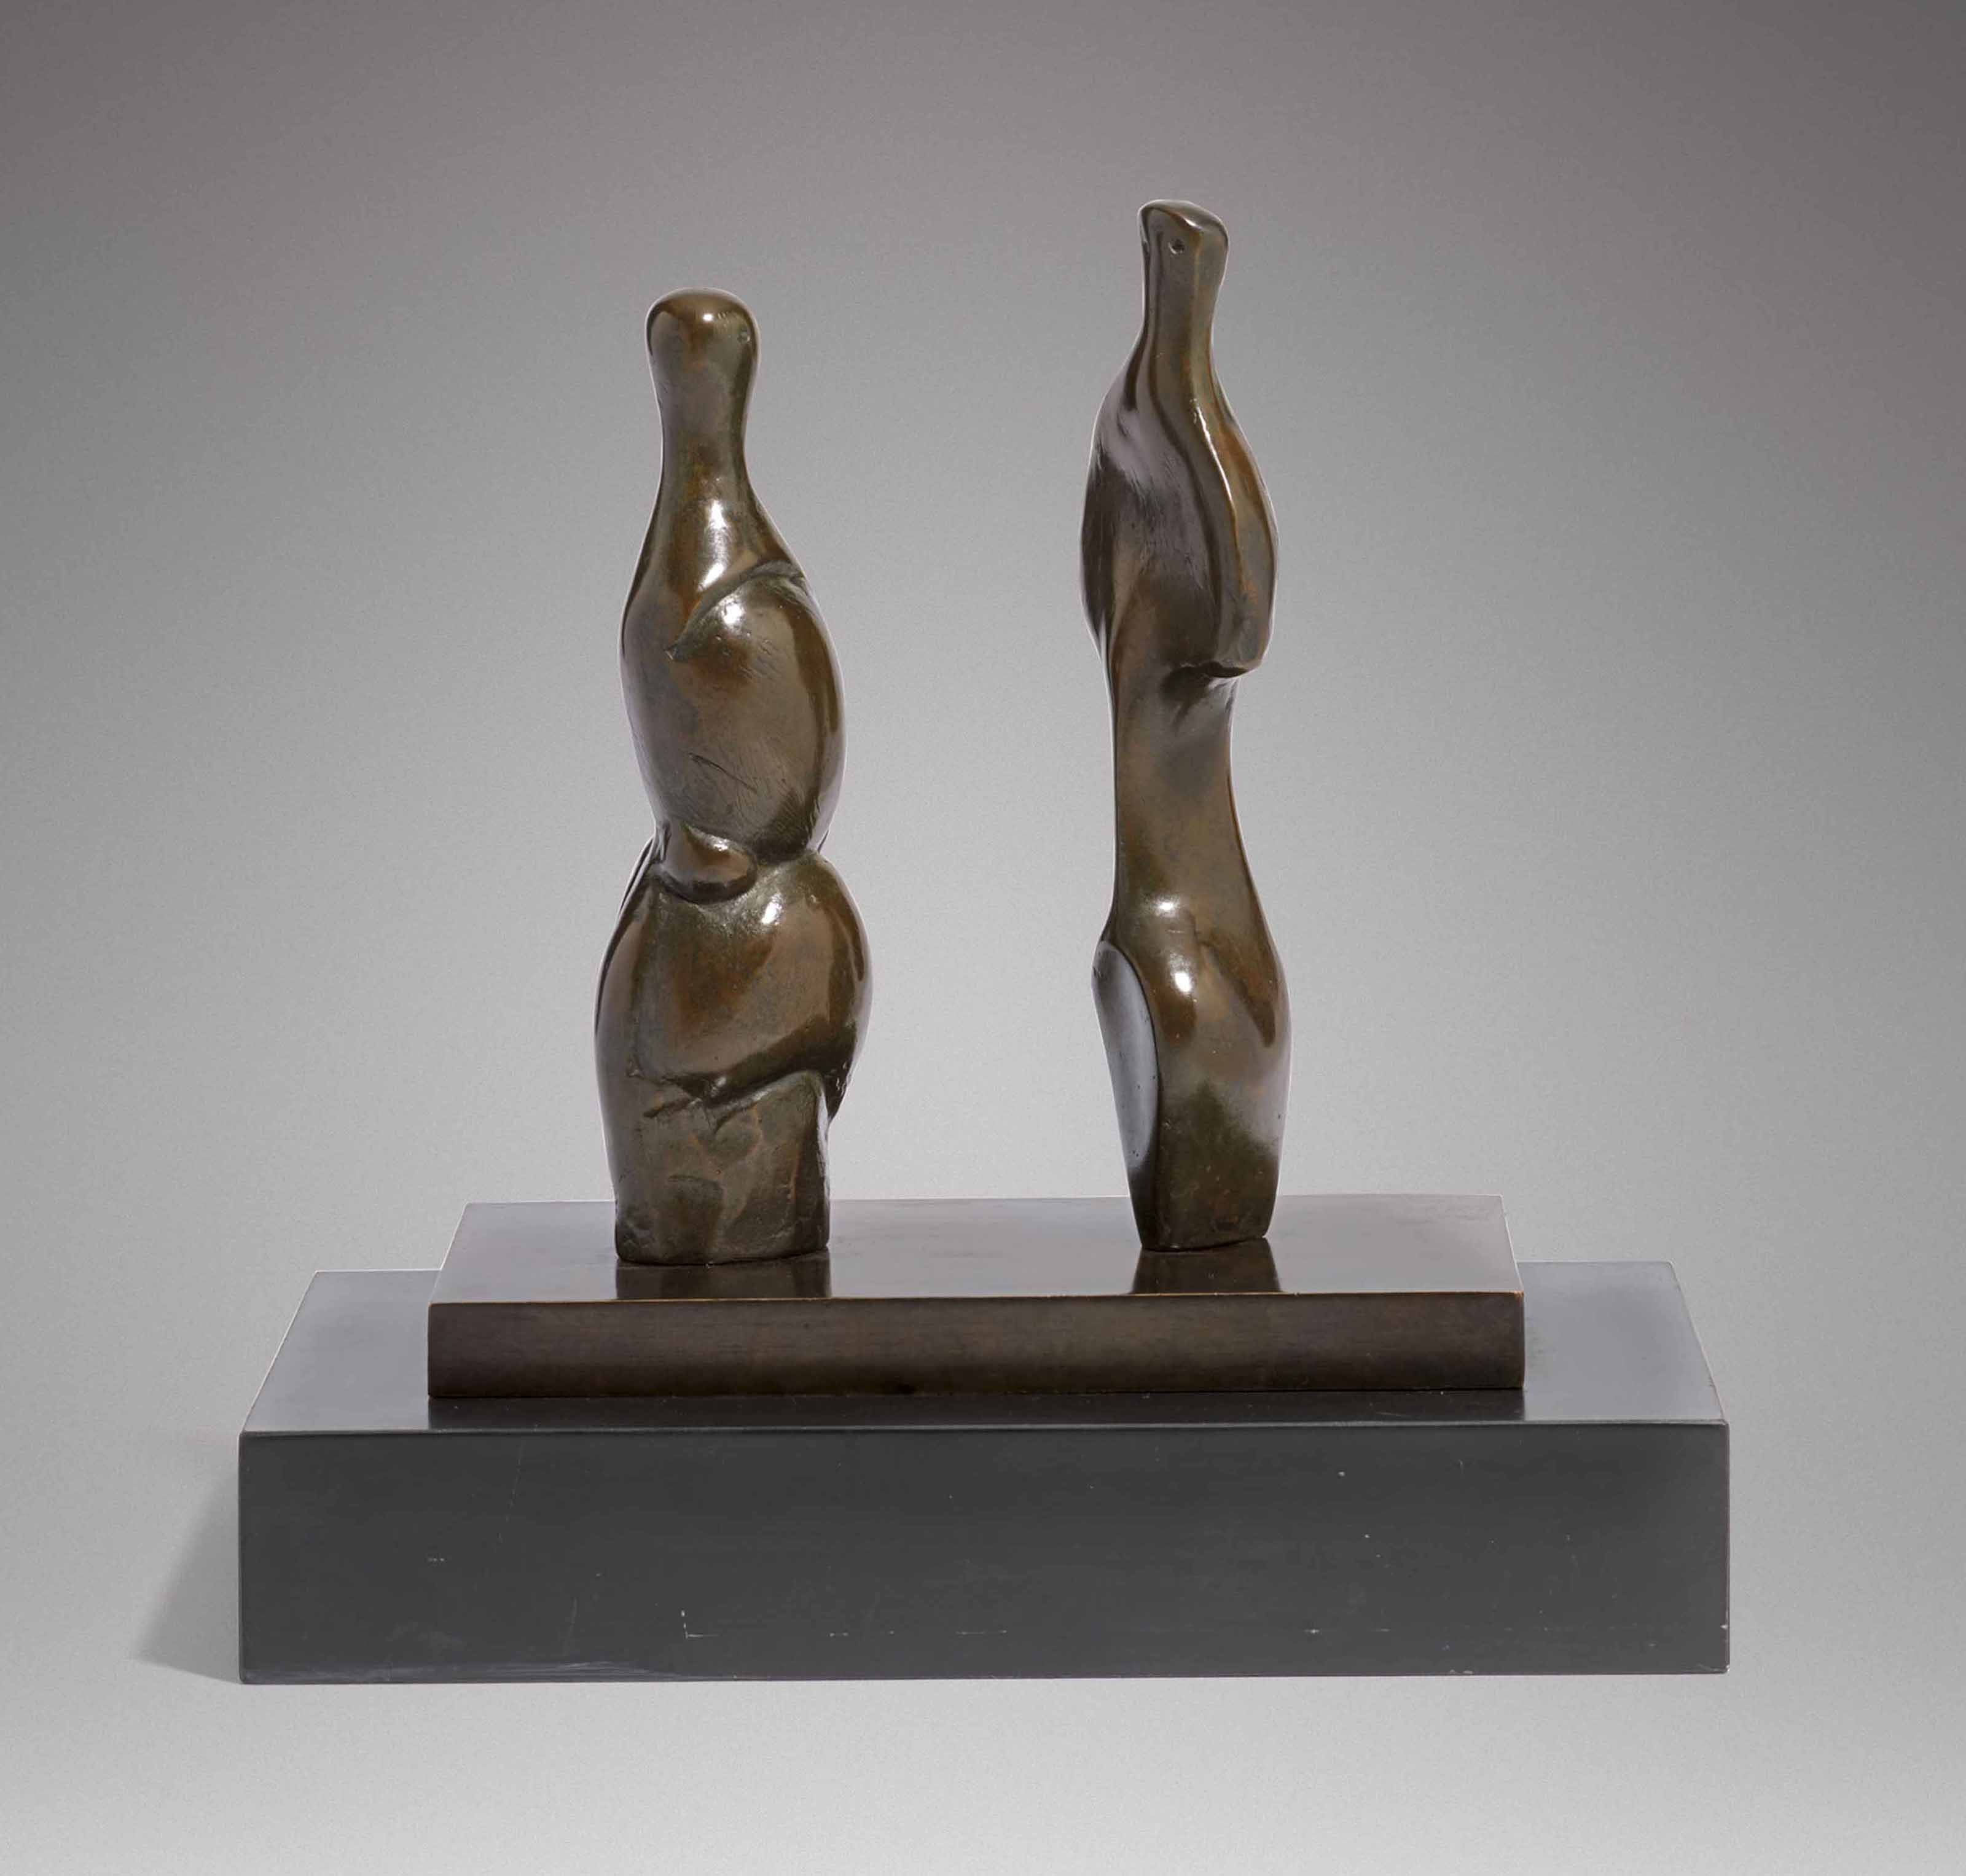 Henry Moore, O.M., C.H. (1898-